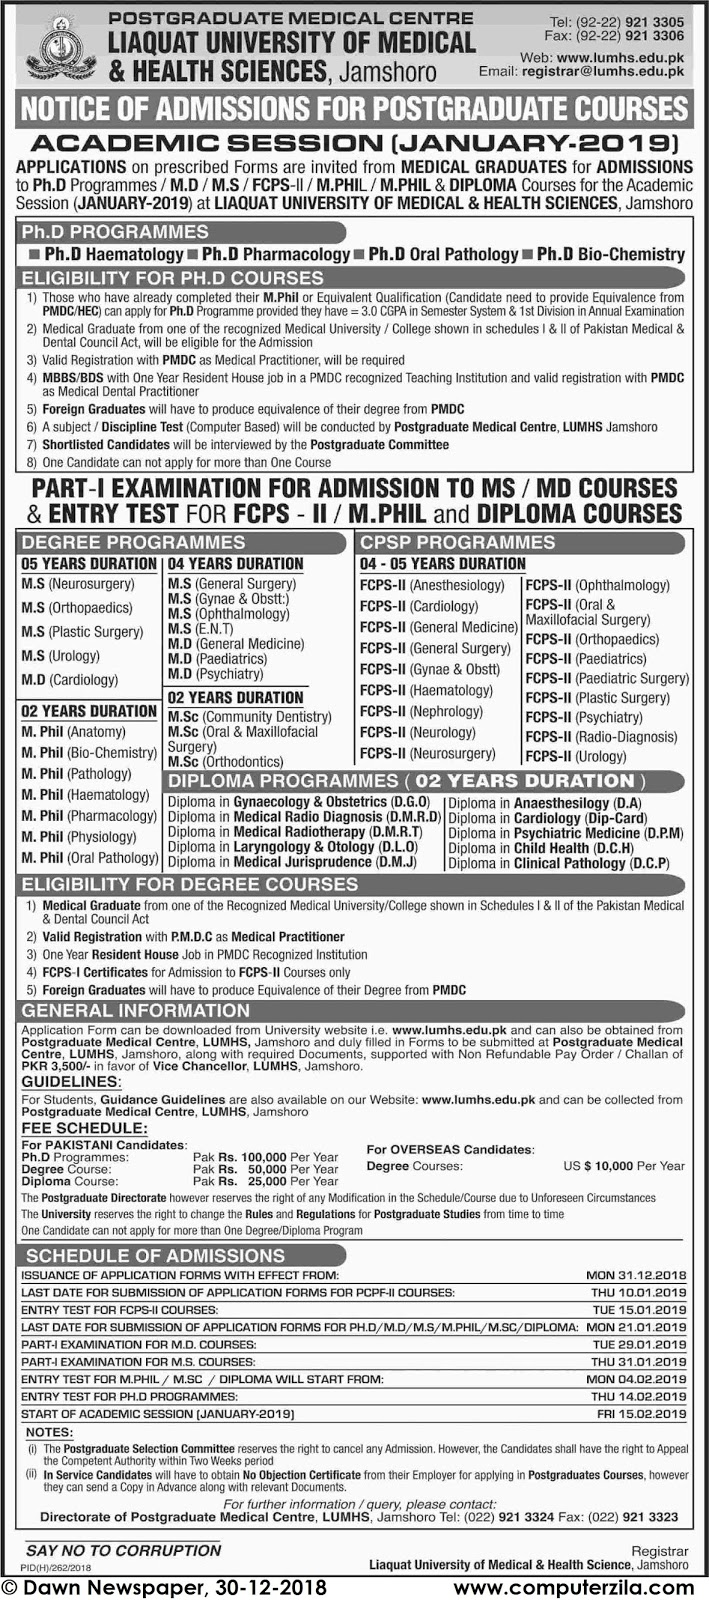 Admissions Open For Spring 2019 At LUMHS Jamshoro Campus